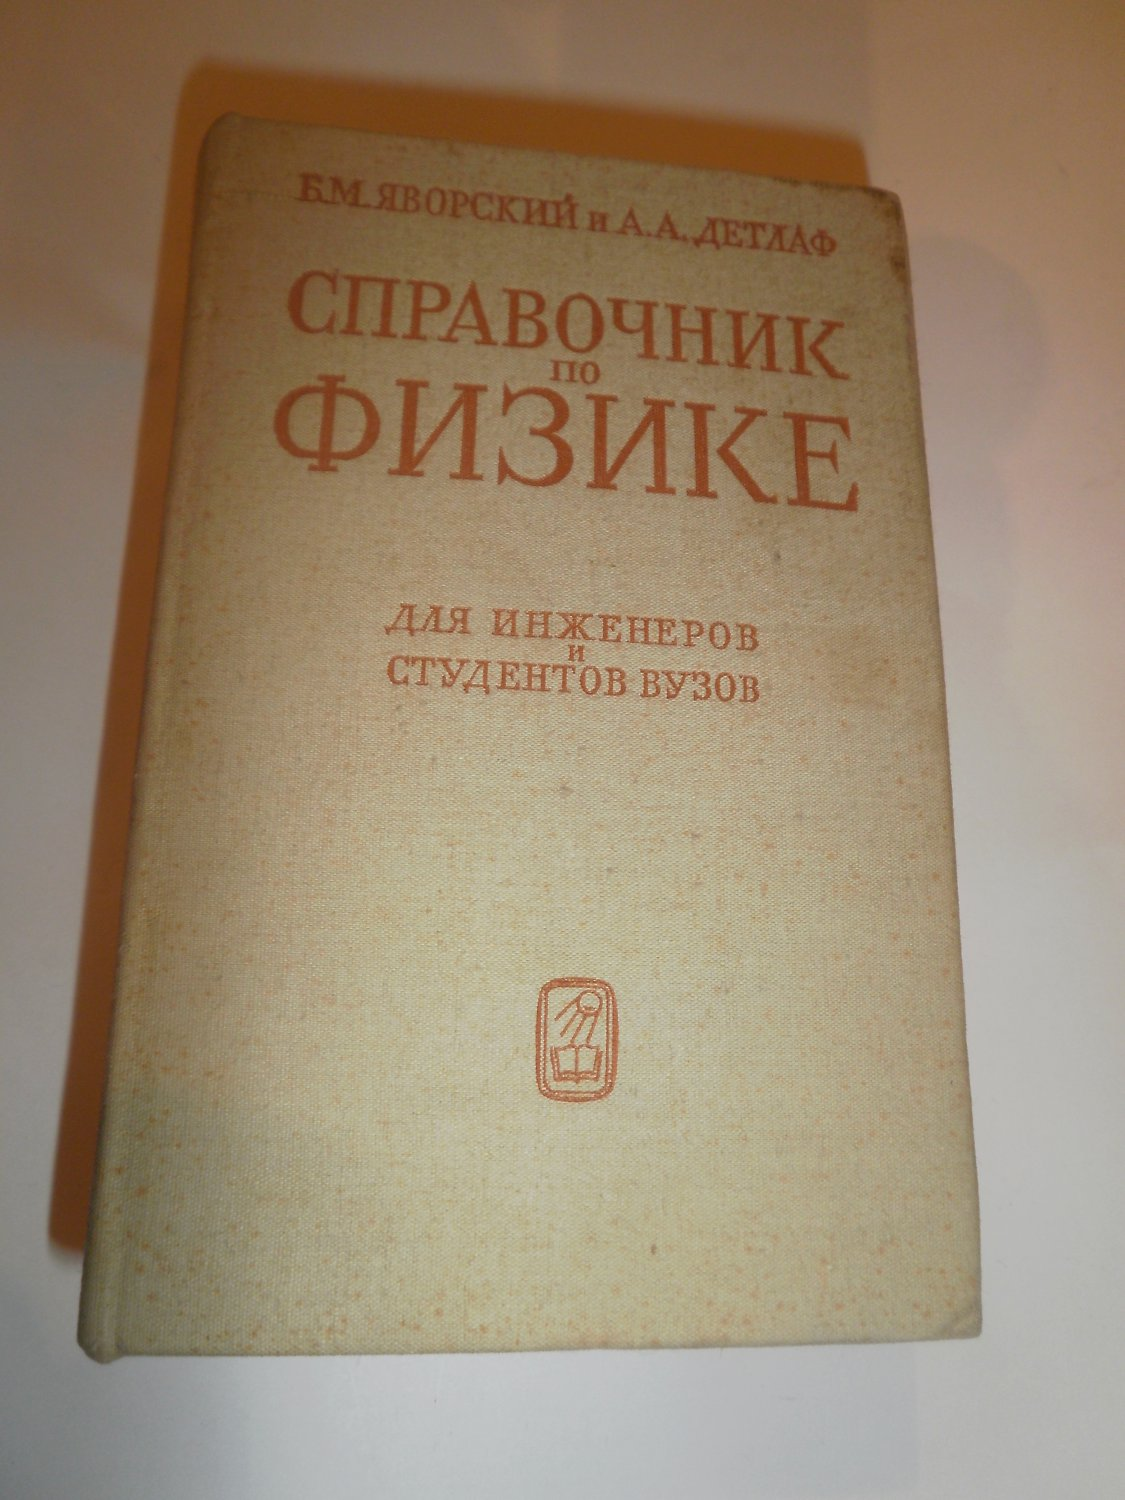 Reference book on Physics by B. Yavorsky